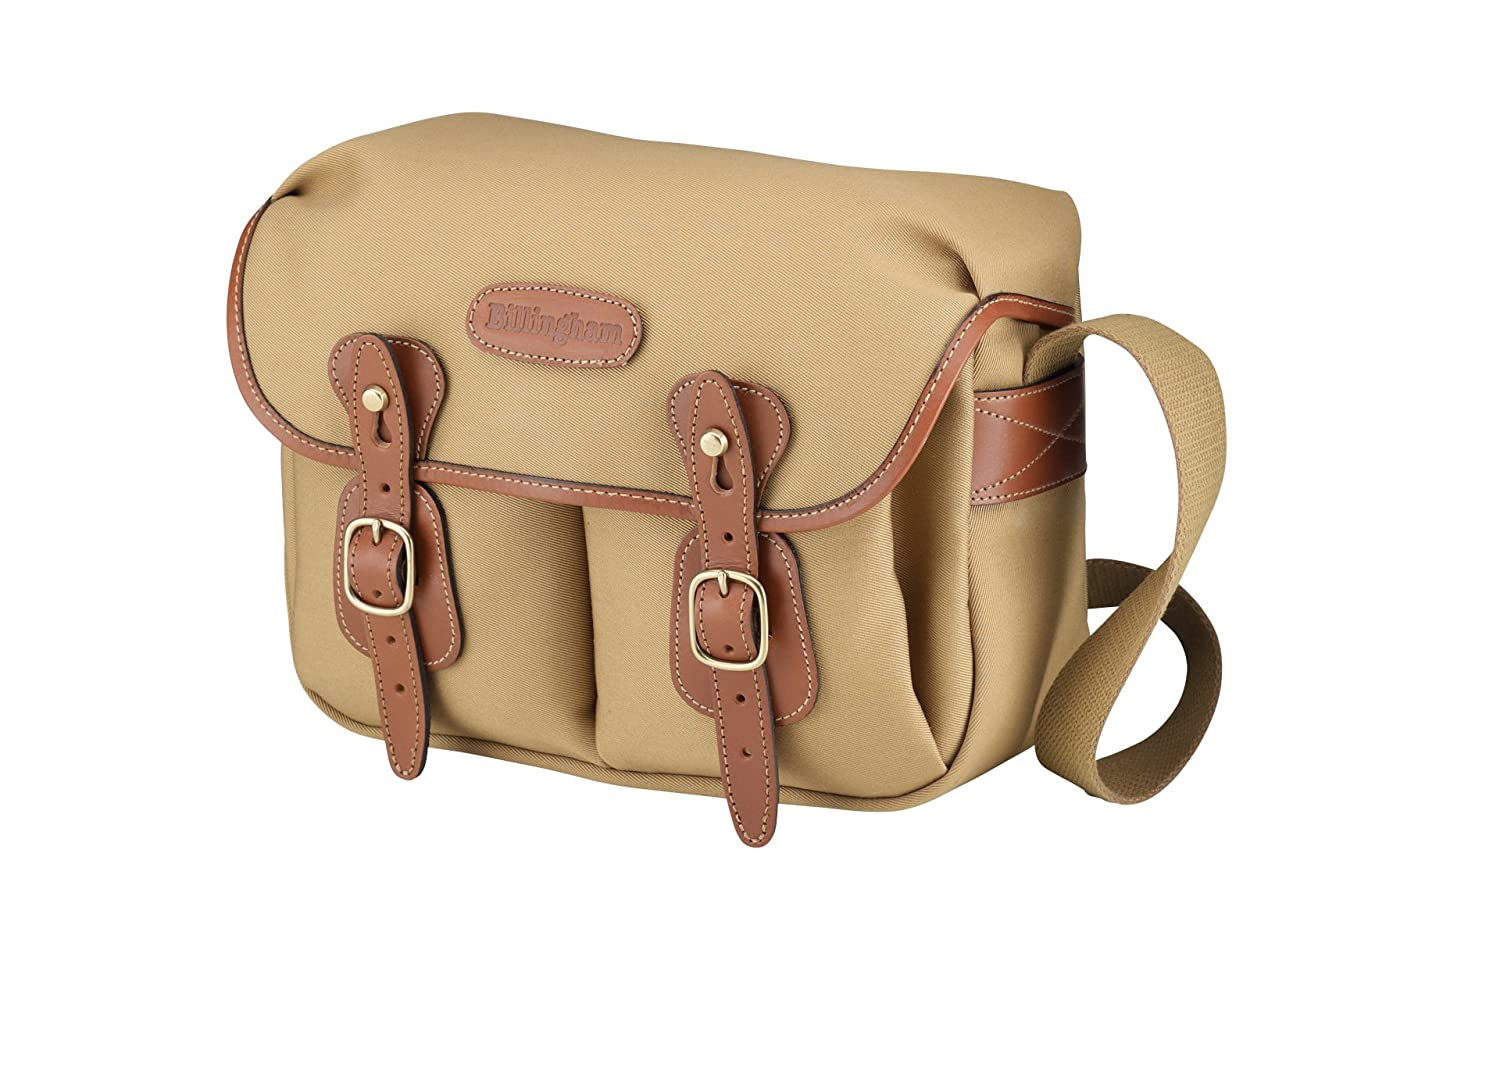 Billingham Hadley Digital Camera Shoulder Bag 108